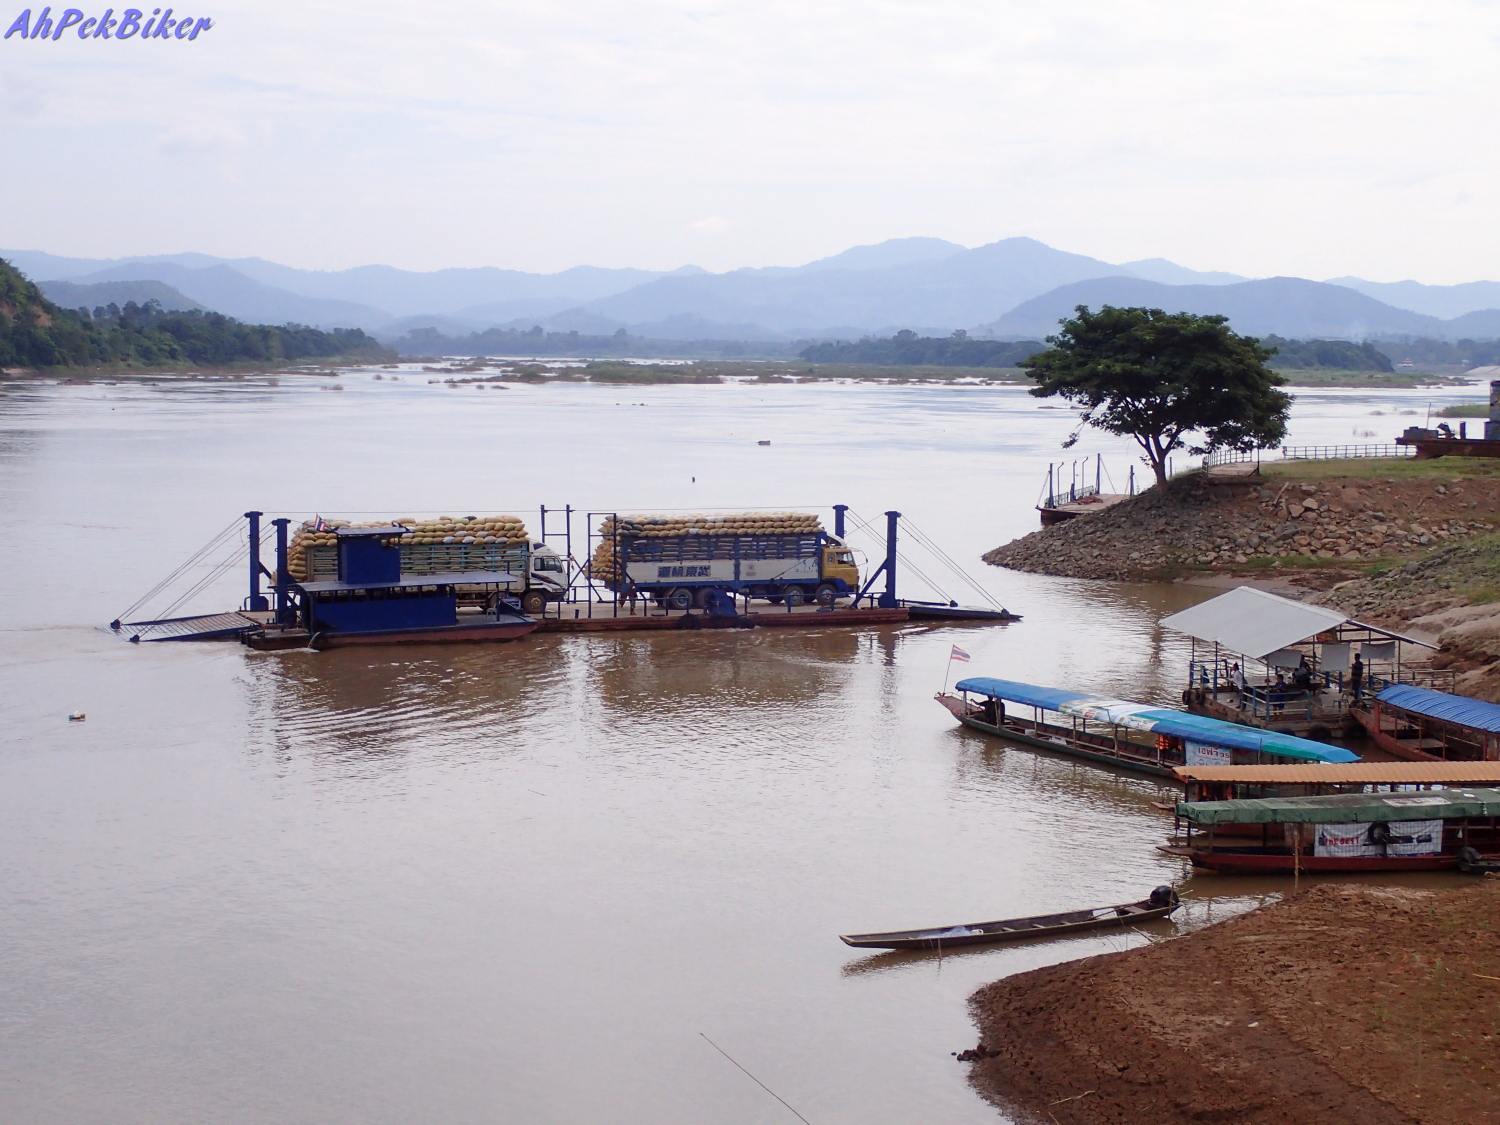 From Here Too We Could See The Ban Khok Phai Border Checkpoint. Passenger  Longboats Bring People Over From A Jetty From The Laos Side, While Large  Open Open ...